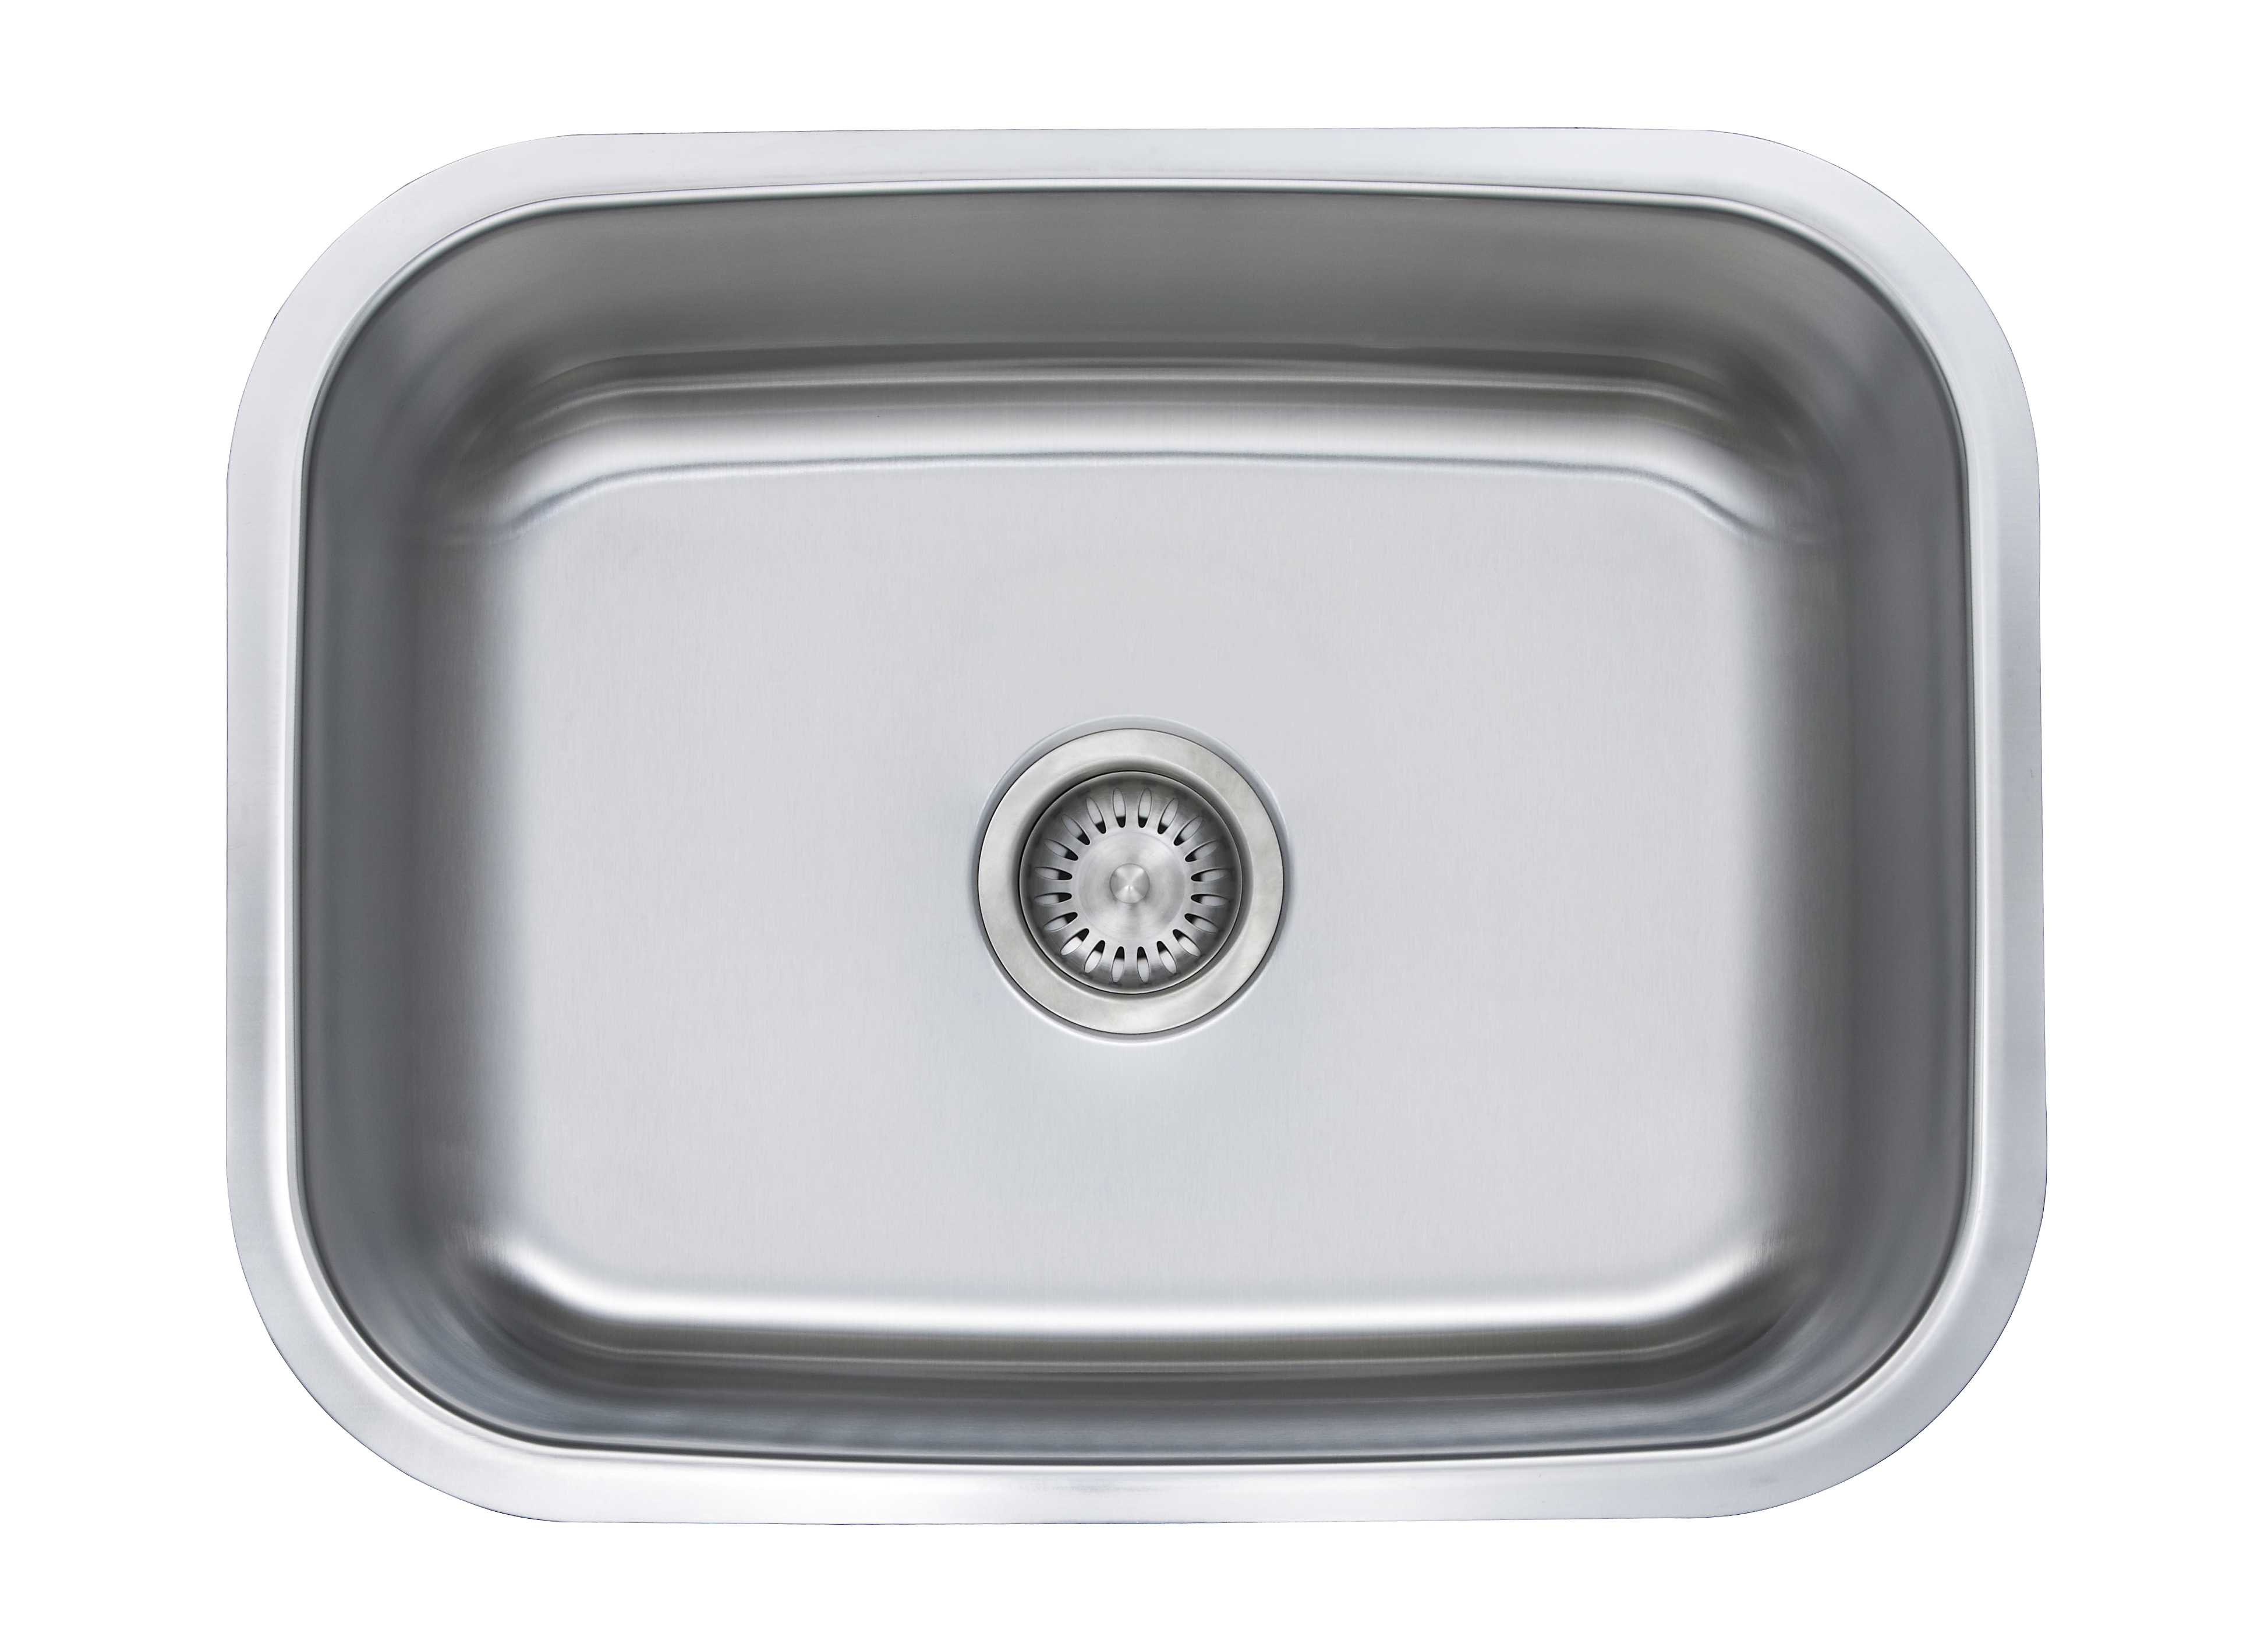 Decora 18 Gauge Single Bowl Sinks